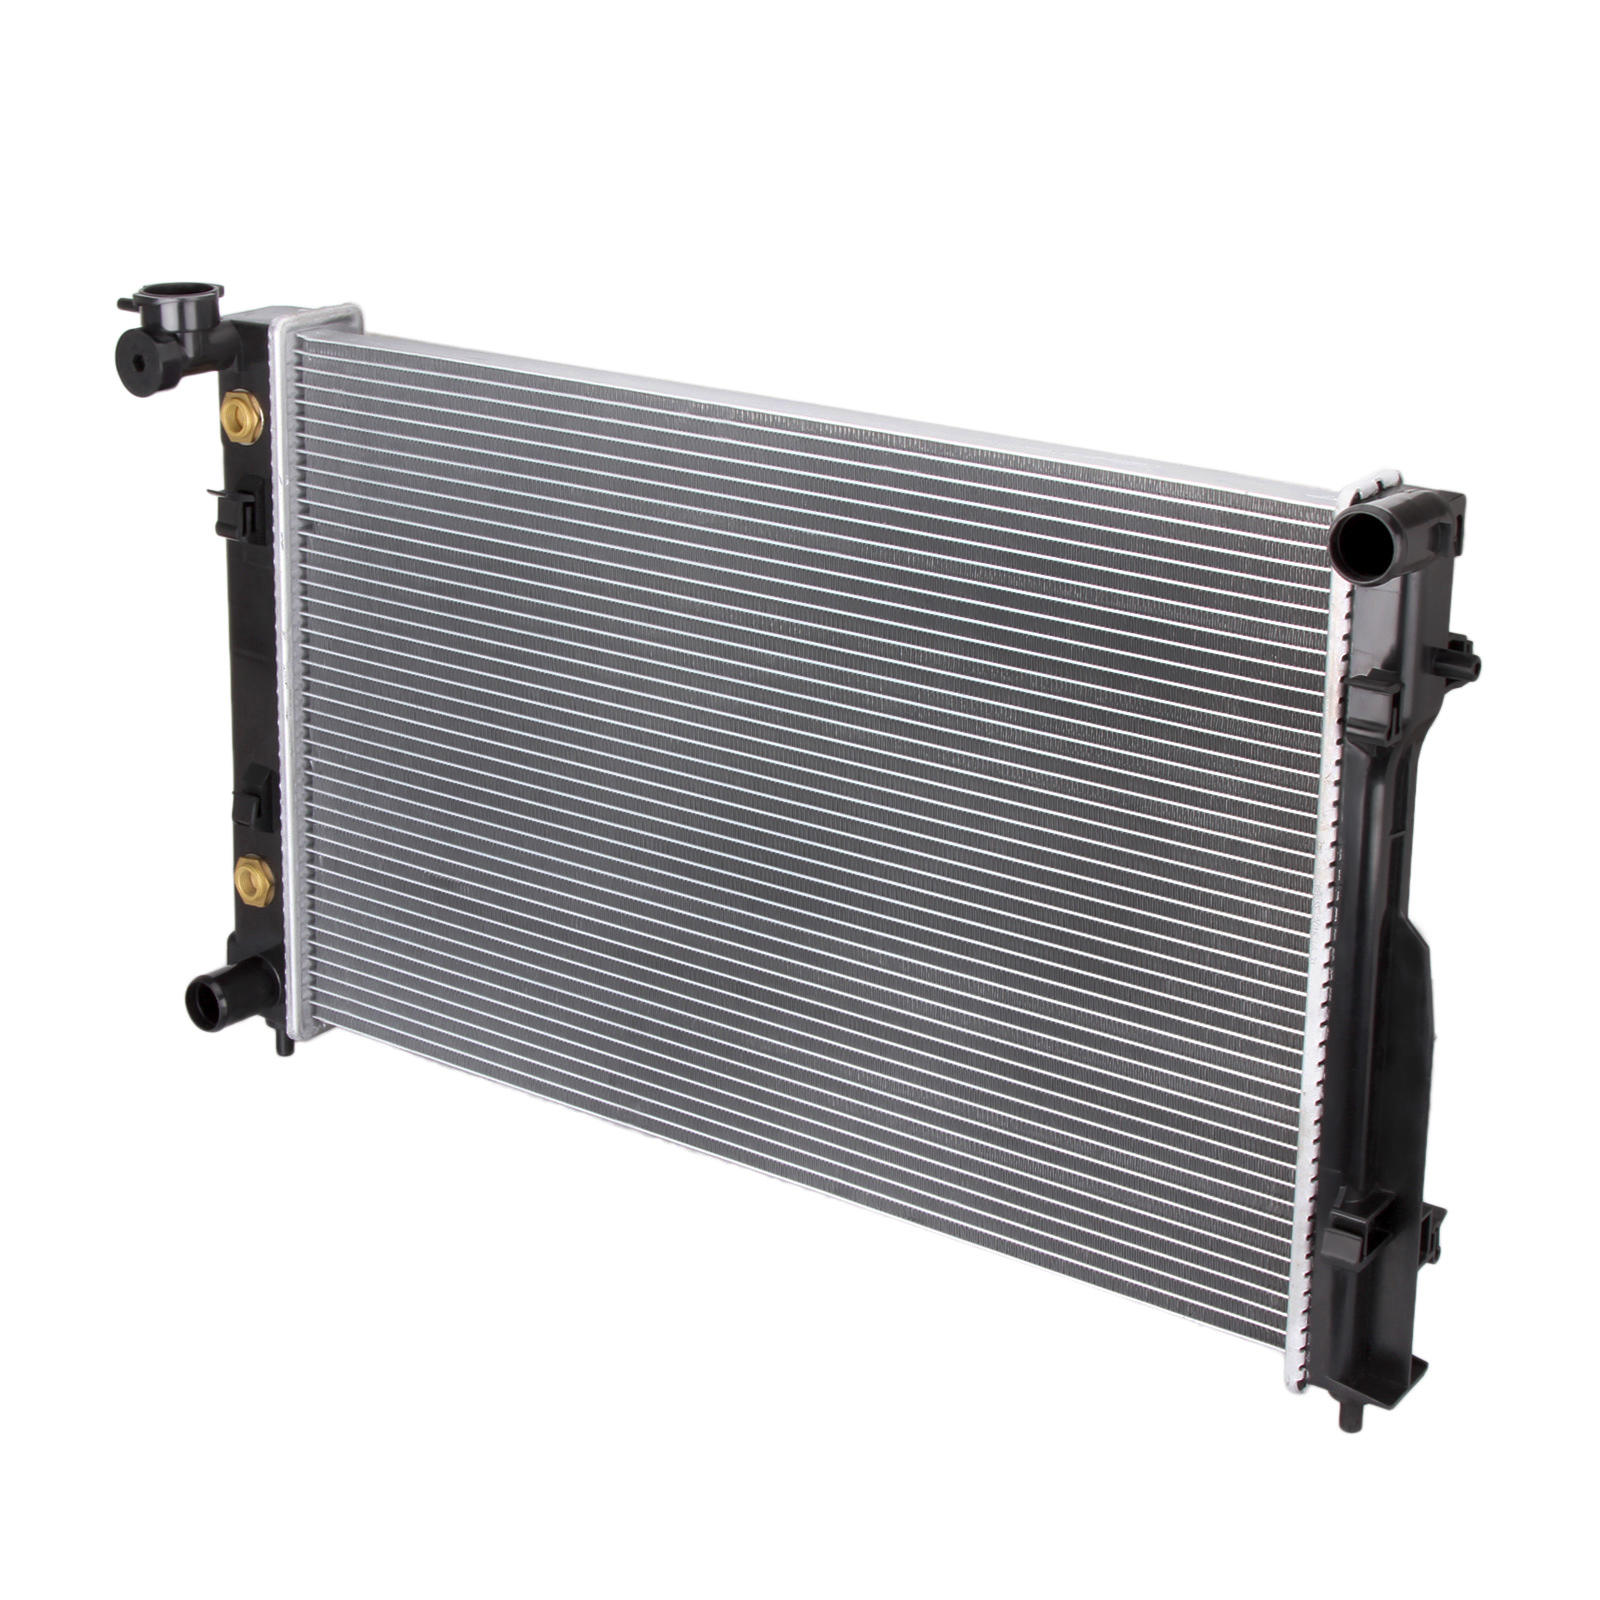 Car Radiators for Holden VY Commodore V6 3.8L 2002-2005 Auto/Manual Premium Quality